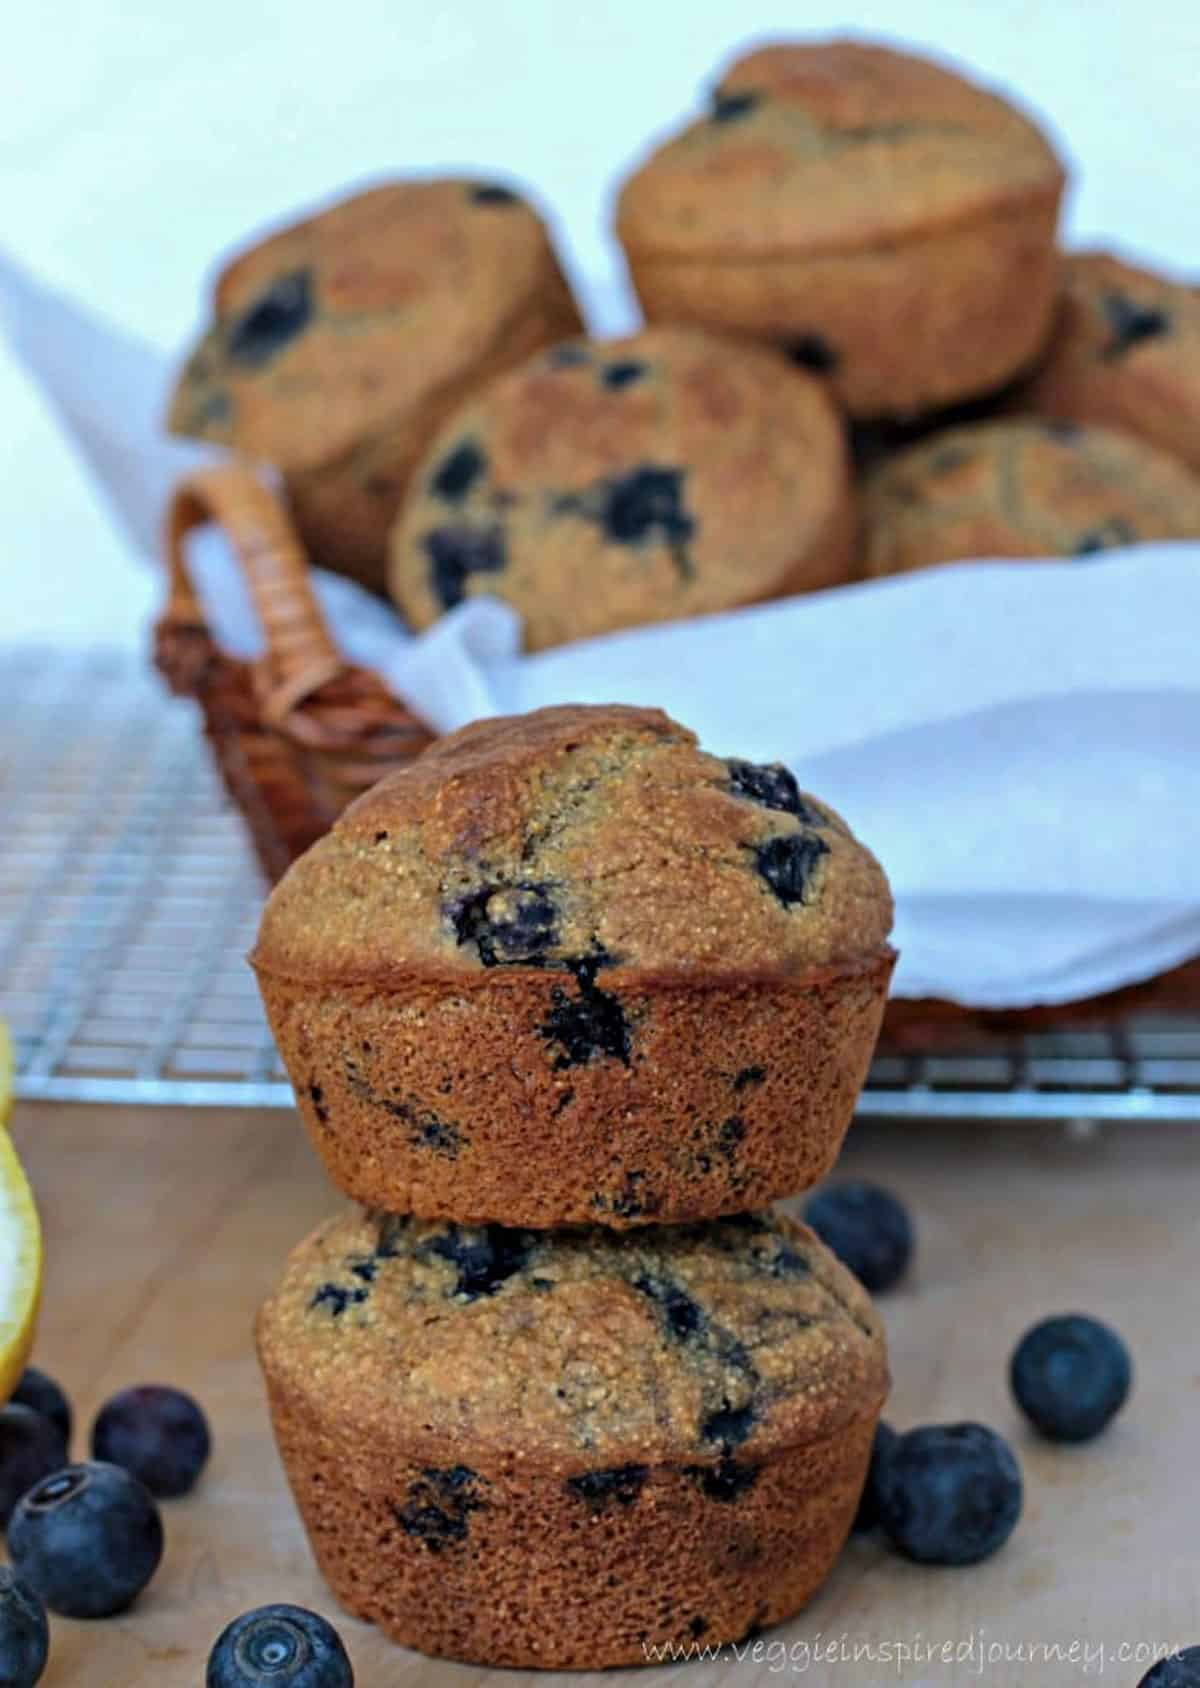 Blueberry cornmeal muffins stacked on top of each other.